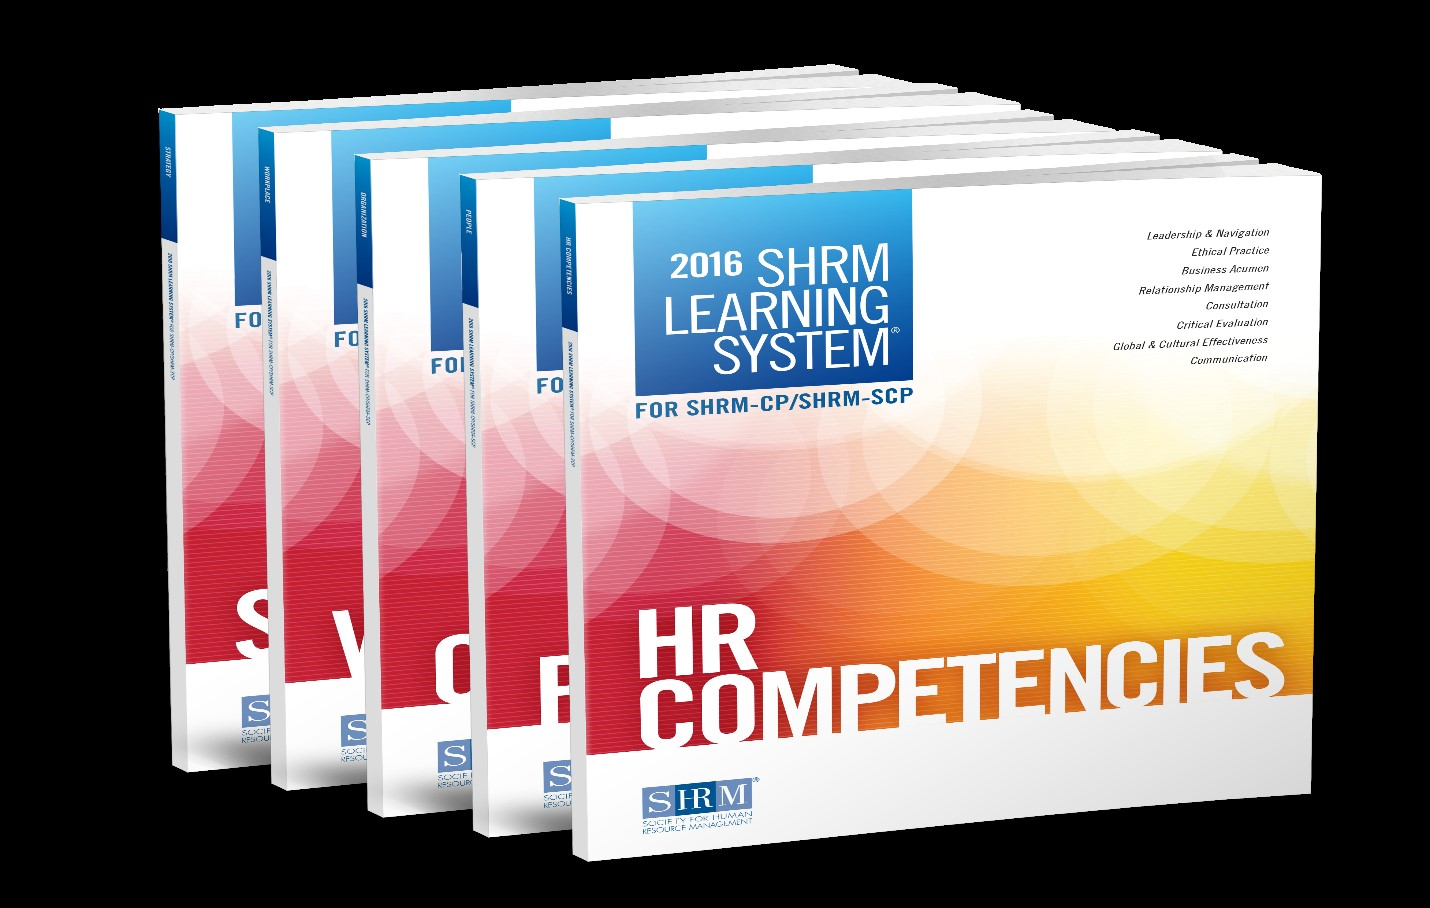 Pbsc offers new certification prep courses for hr professionals new certification preparation courses are available for human resource professionals through palm beach state colleges corporate and continuing education 1betcityfo Gallery